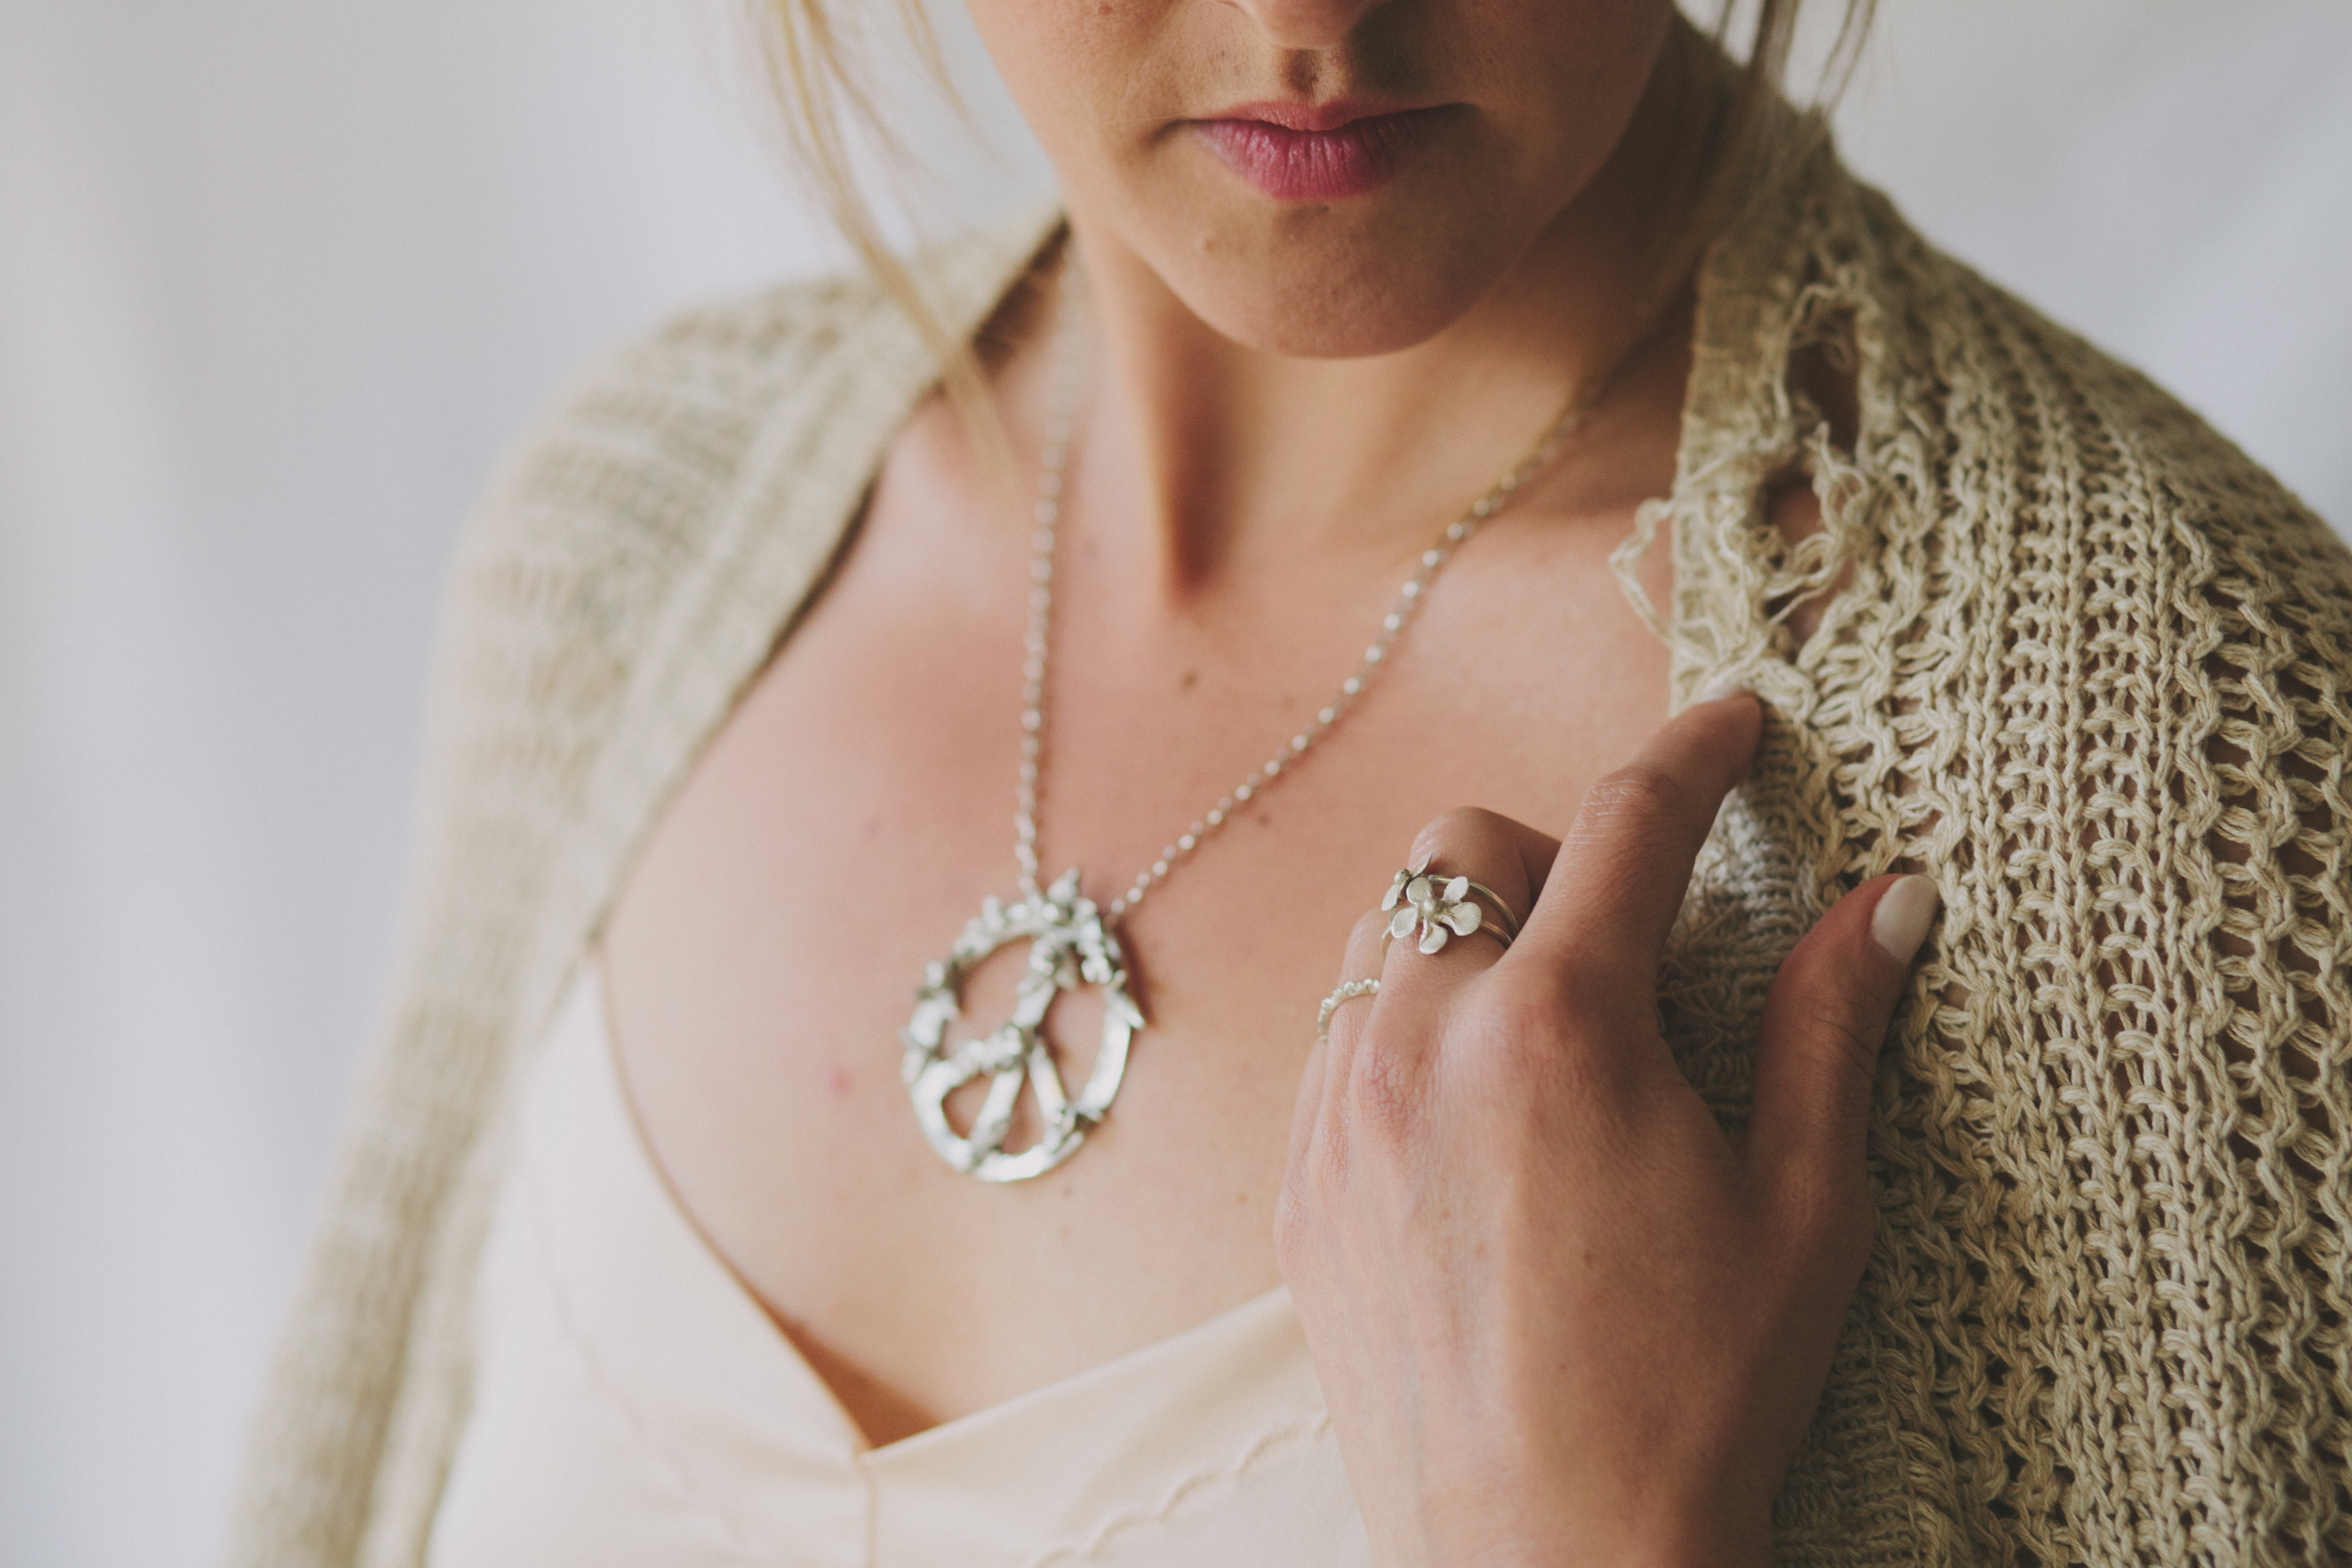 What The World Needs Now Necklace, Mountain Stacker, Pocket Full of Posies Ring